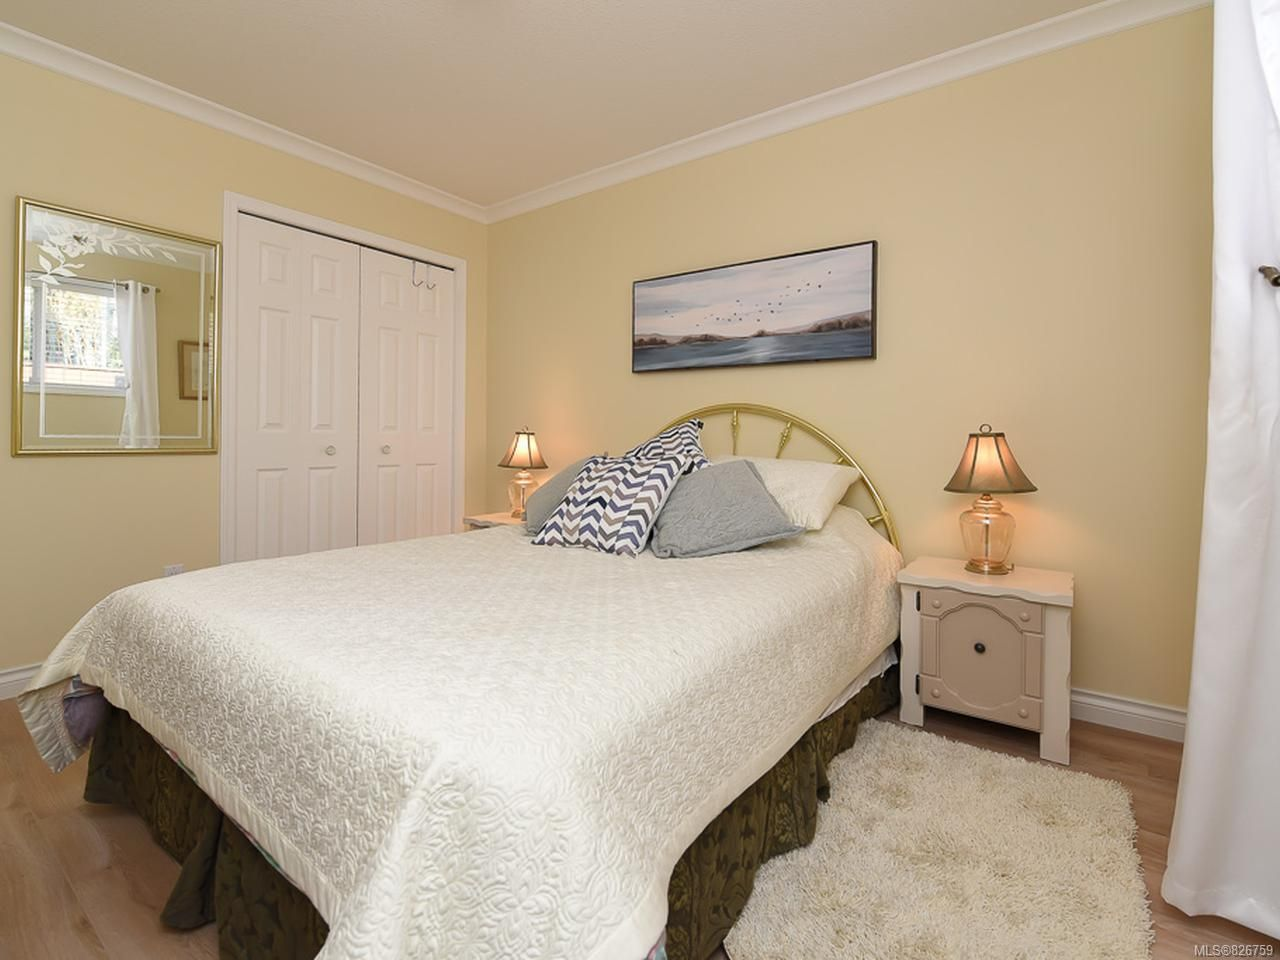 Photo 18: Photos: 2165 Stirling Cres in COURTENAY: CV Courtenay East House for sale (Comox Valley)  : MLS®# 826759